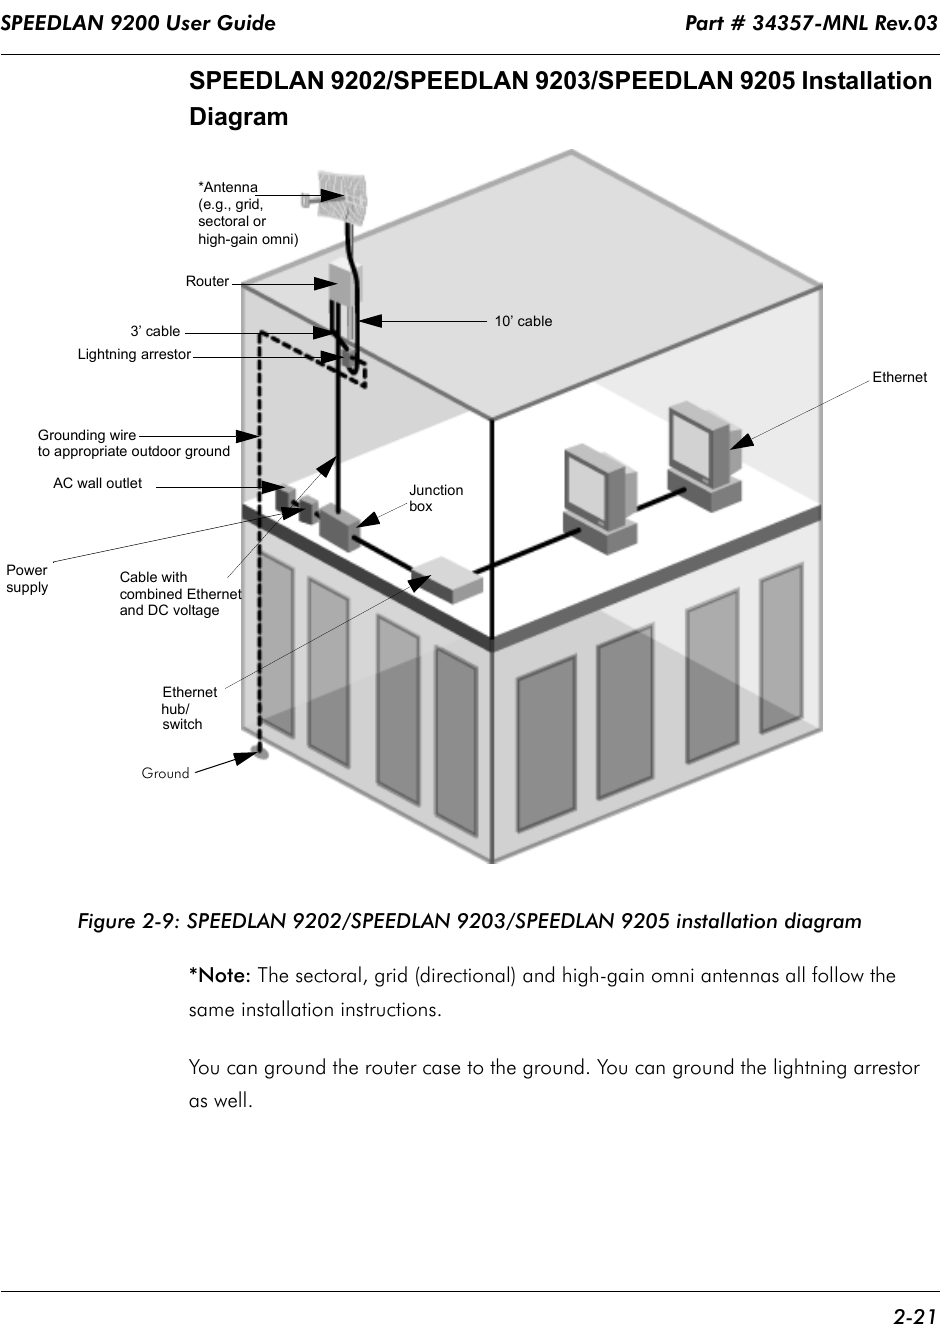 SPEEDLAN 9200 User Guide                                                                   Part # 34357-MNL Rev.03      2-21                                                                                                                                                              SPEEDLAN 9202/SPEEDLAN 9203/SPEEDLAN 9205 Installation Diagram Figure 2-9: SPEEDLAN 9202/SPEEDLAN 9203/SPEEDLAN 9205 installation diagram *Note: The sectoral, grid (directional) and high-gain omni antennas all follow the same installation instructions.You can ground the router case to the ground. You can ground the lightning arrestor as well.  Router 3' cableLightning arrestorGrounding wireAC wall outletEthernetEthernet 10' cable*Antenna (e.g., grid,JunctionboxCable with combined Ethernetand DC voltagesectoral orhigh-gain omni)hub/switchPowersupplyGroundto appropriate outdoor ground